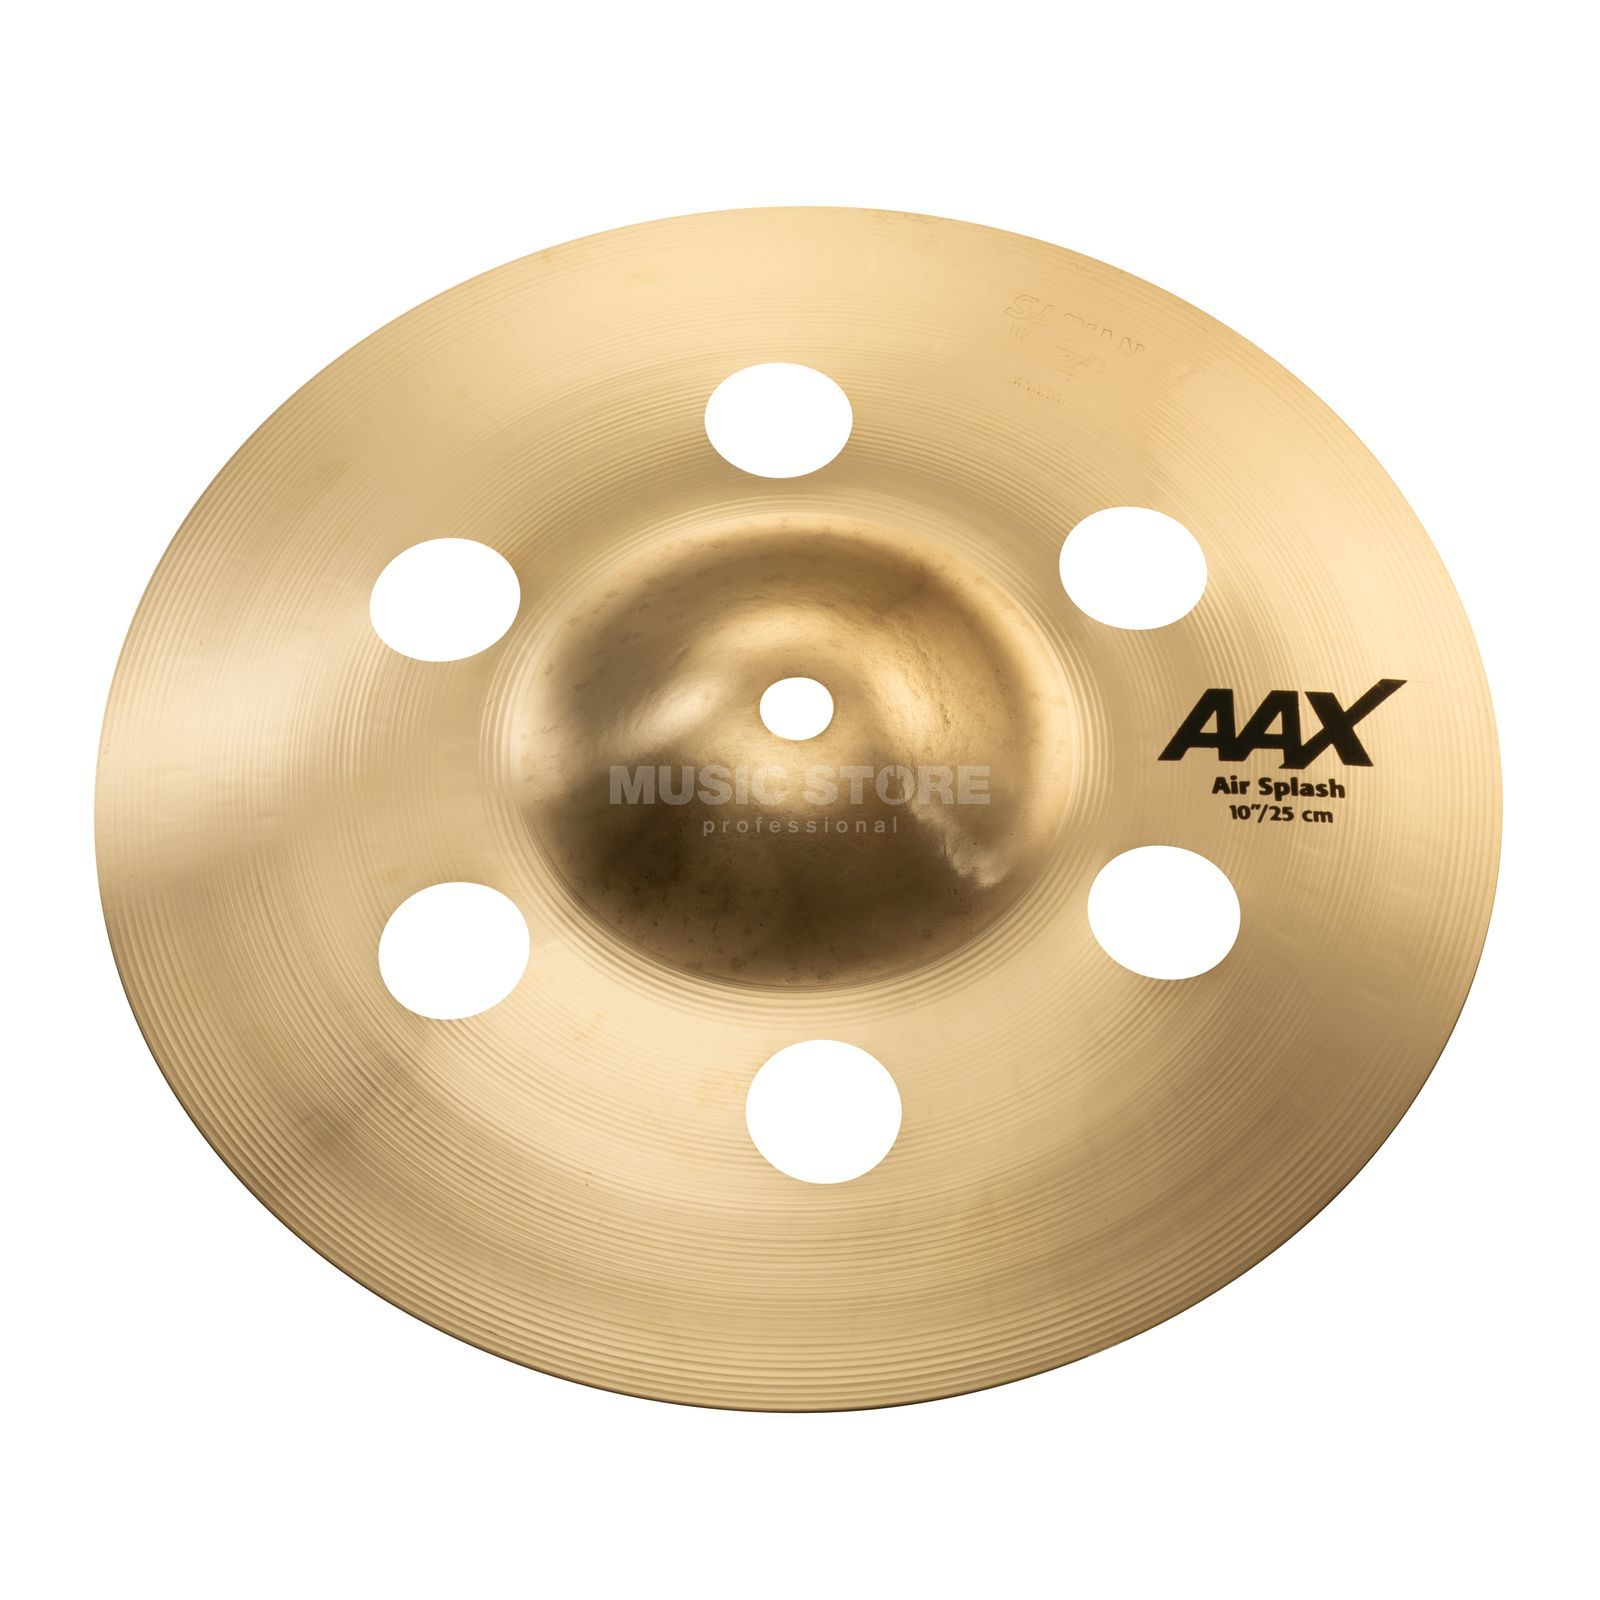 "Sabian AAX Air Splash 10"", Brilliant Finish Produktbillede"